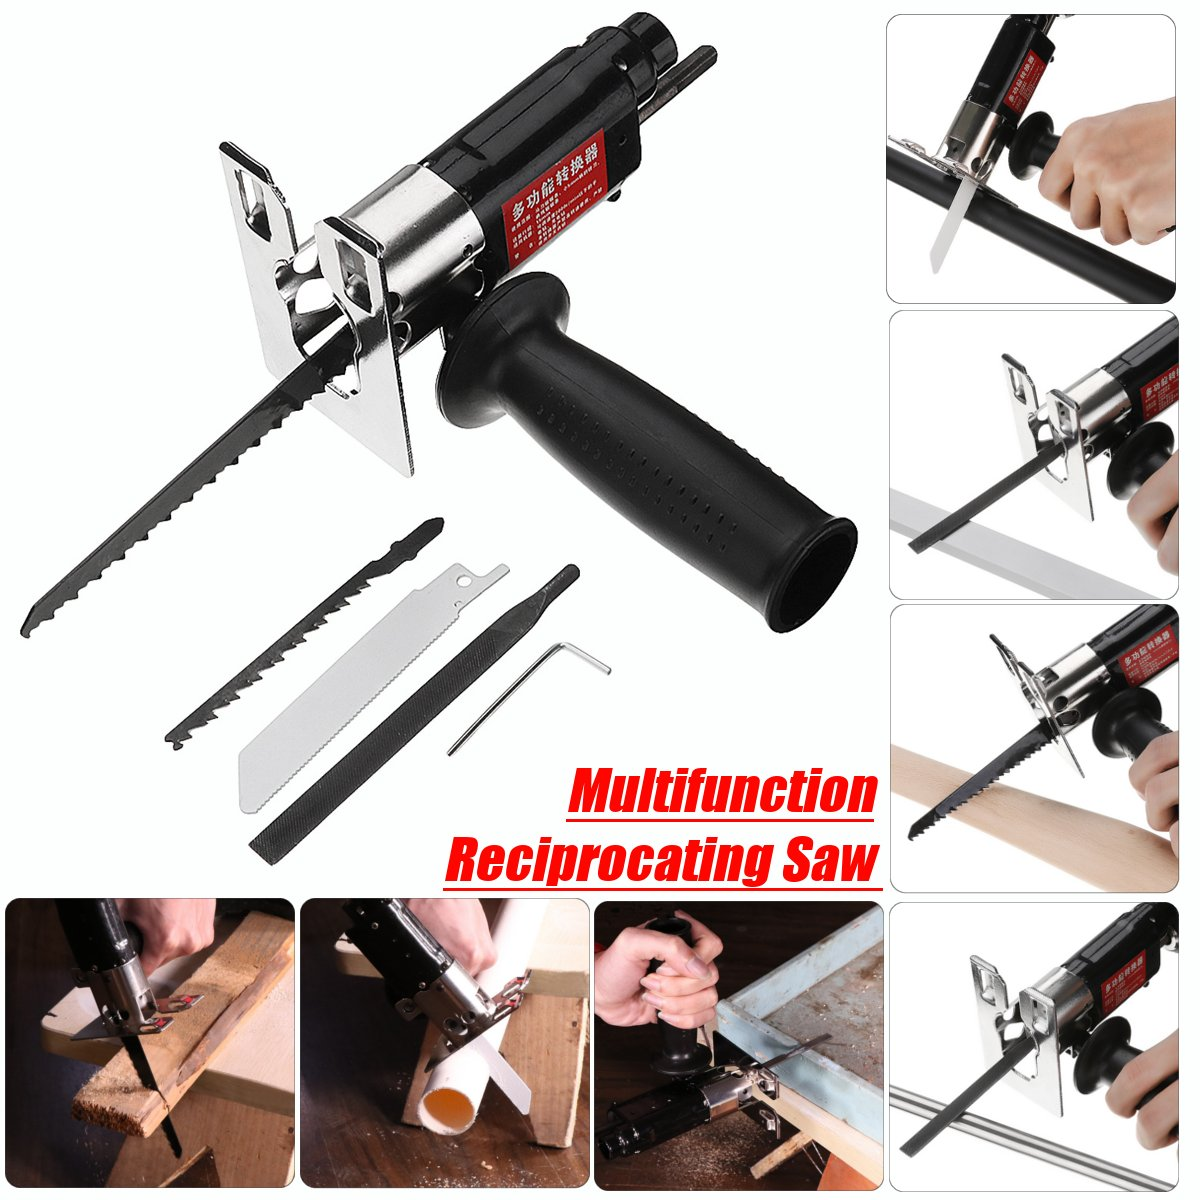 Multifunction Reciprocating Saw Attachment Change Electric Drill Into Reciprocating Saw Jig Saw Metal File \Wood Metal Cutting